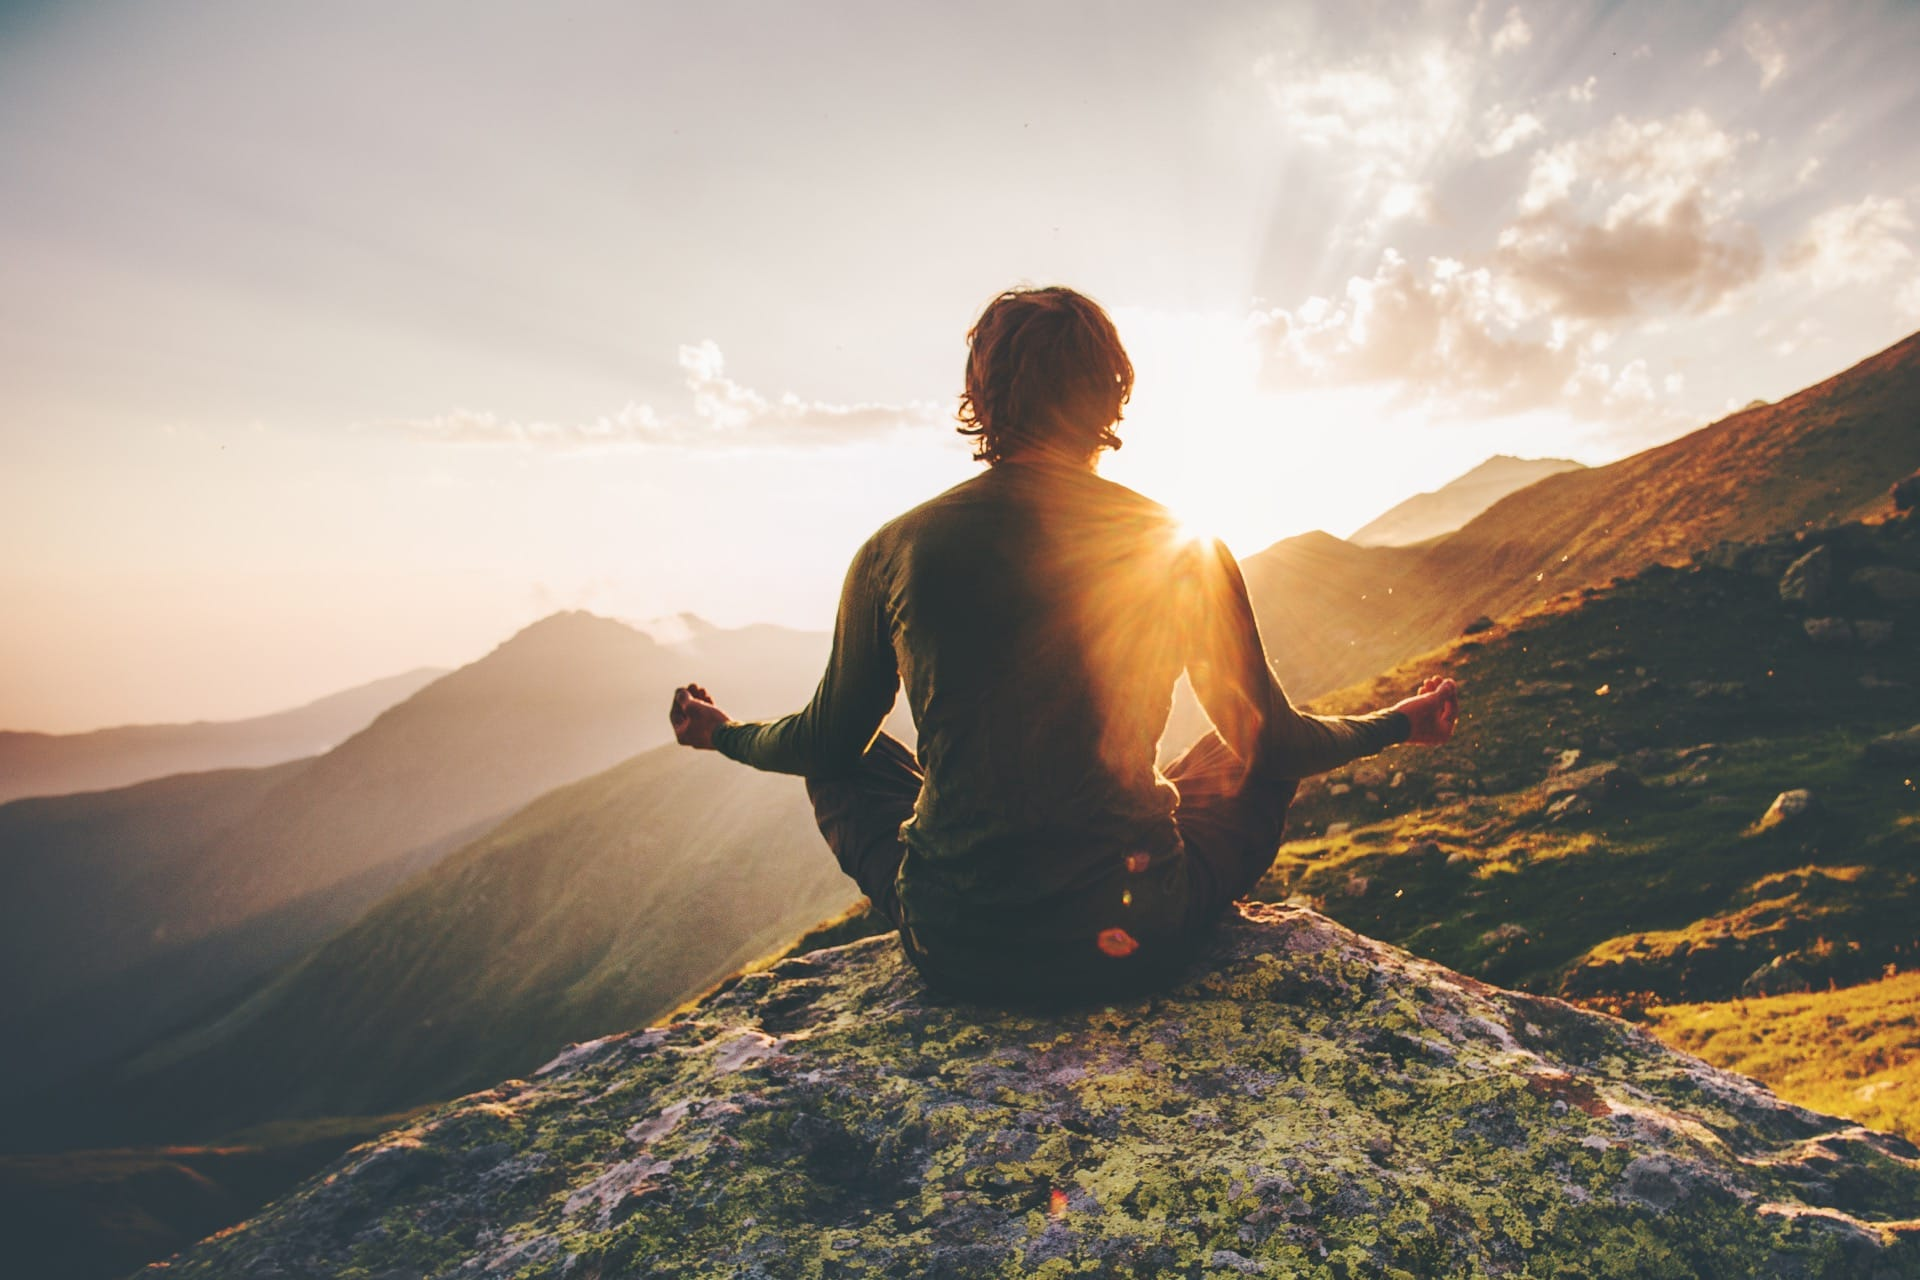 Meditation can help you relax, reduce stress and cope with illness